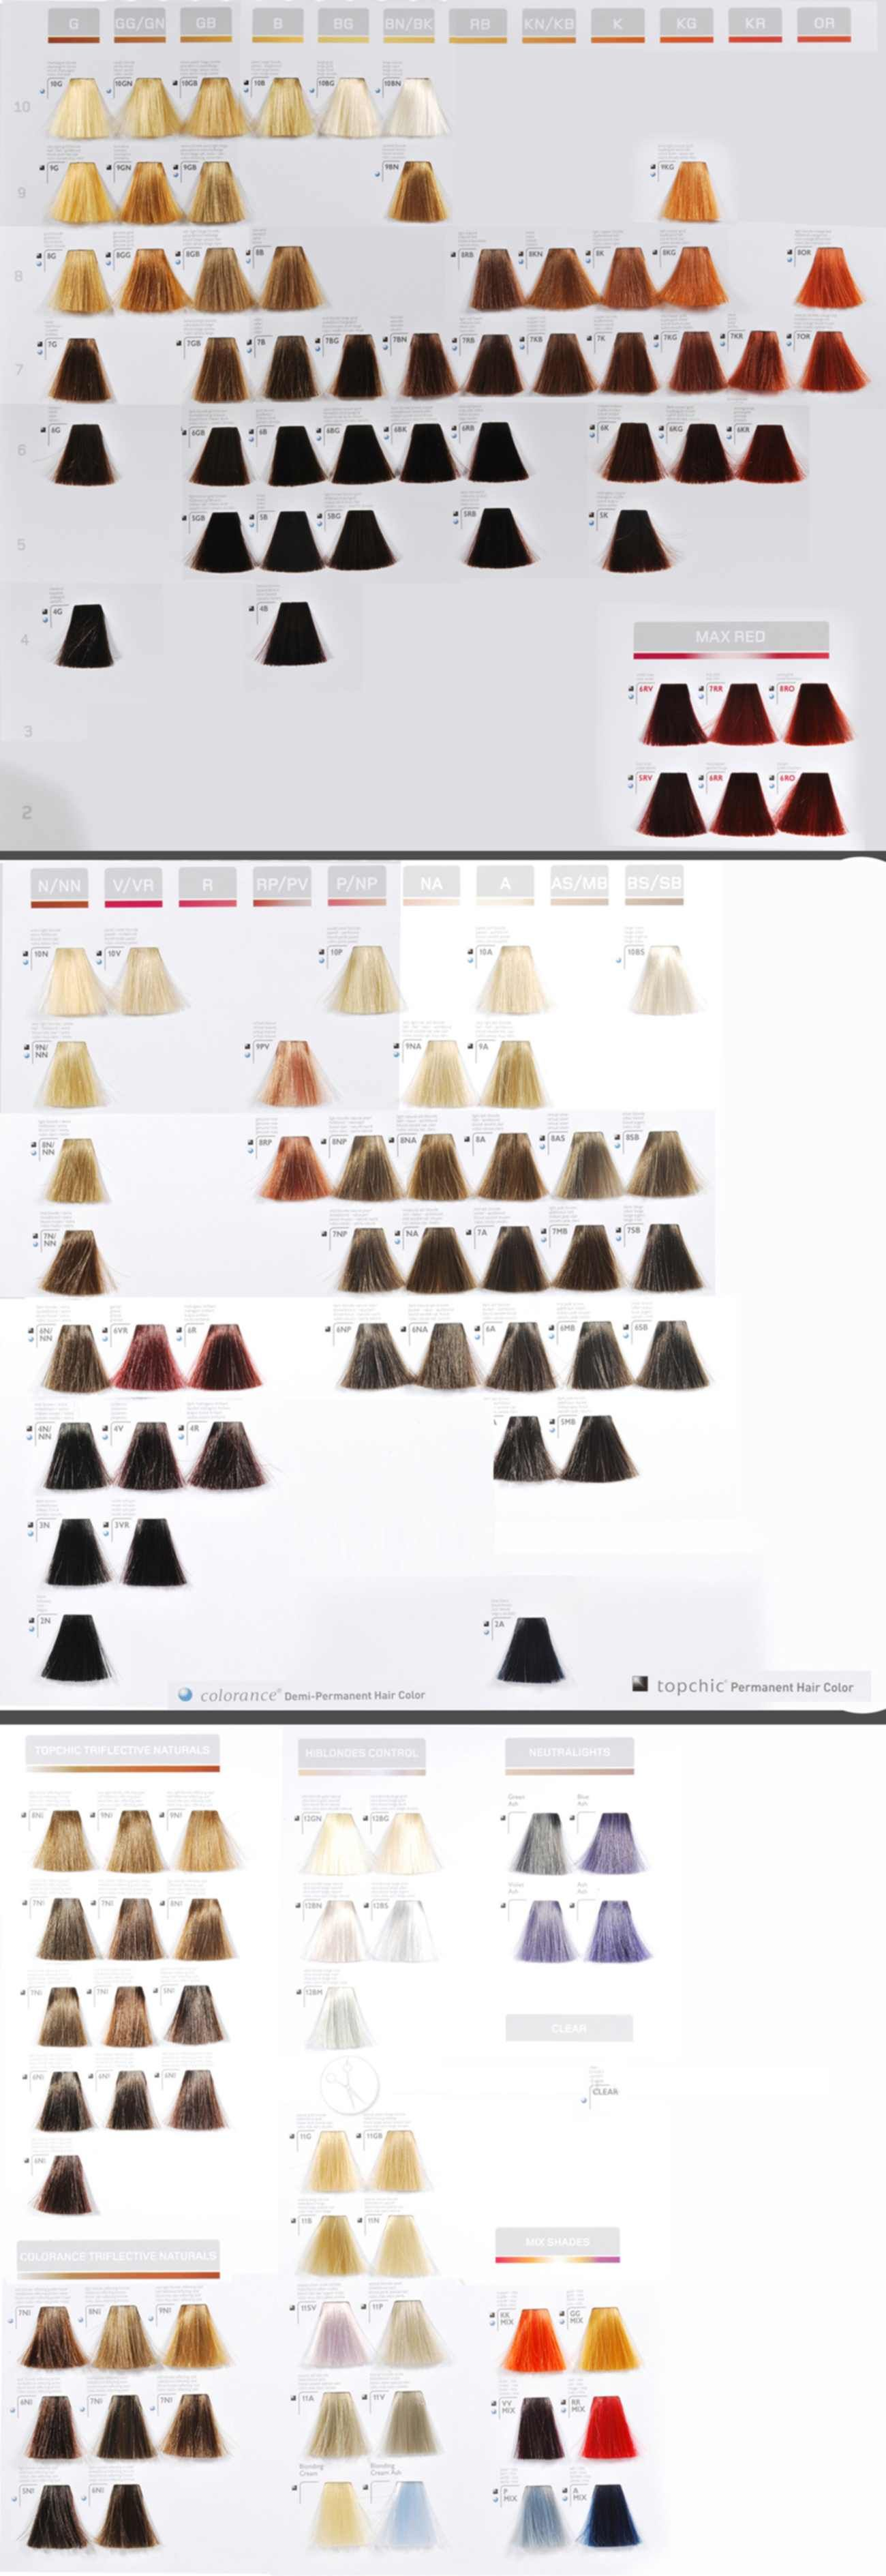 Goldwell Color Chart